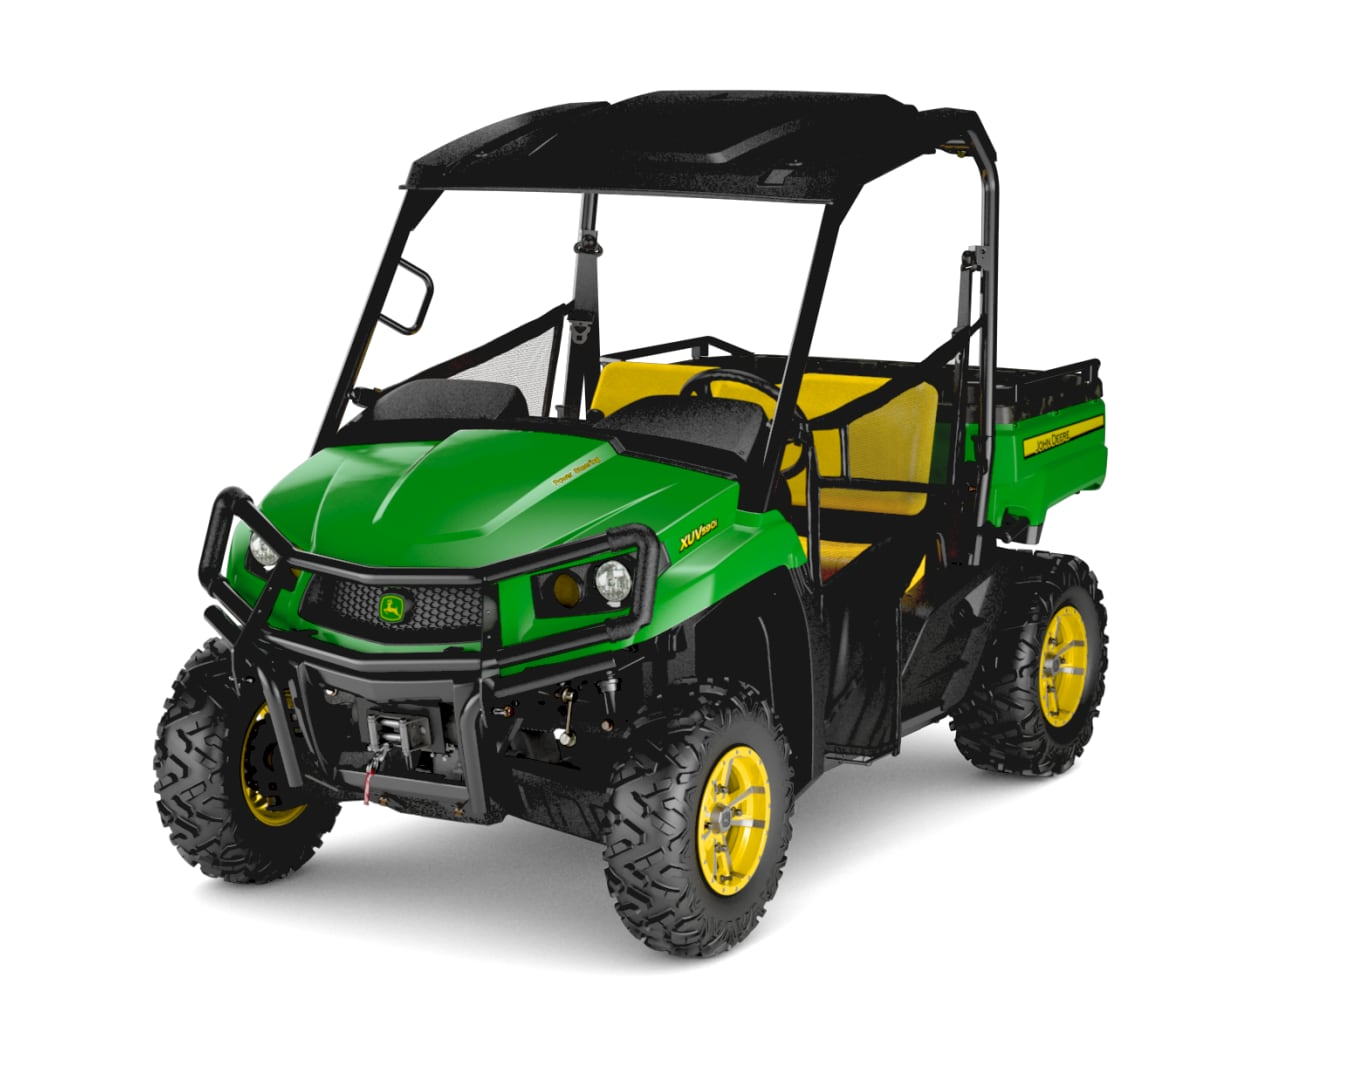 John Deere Gator 2016 Xuv590i And S4 625i Wiring Diagram Xuv 825i Electrical